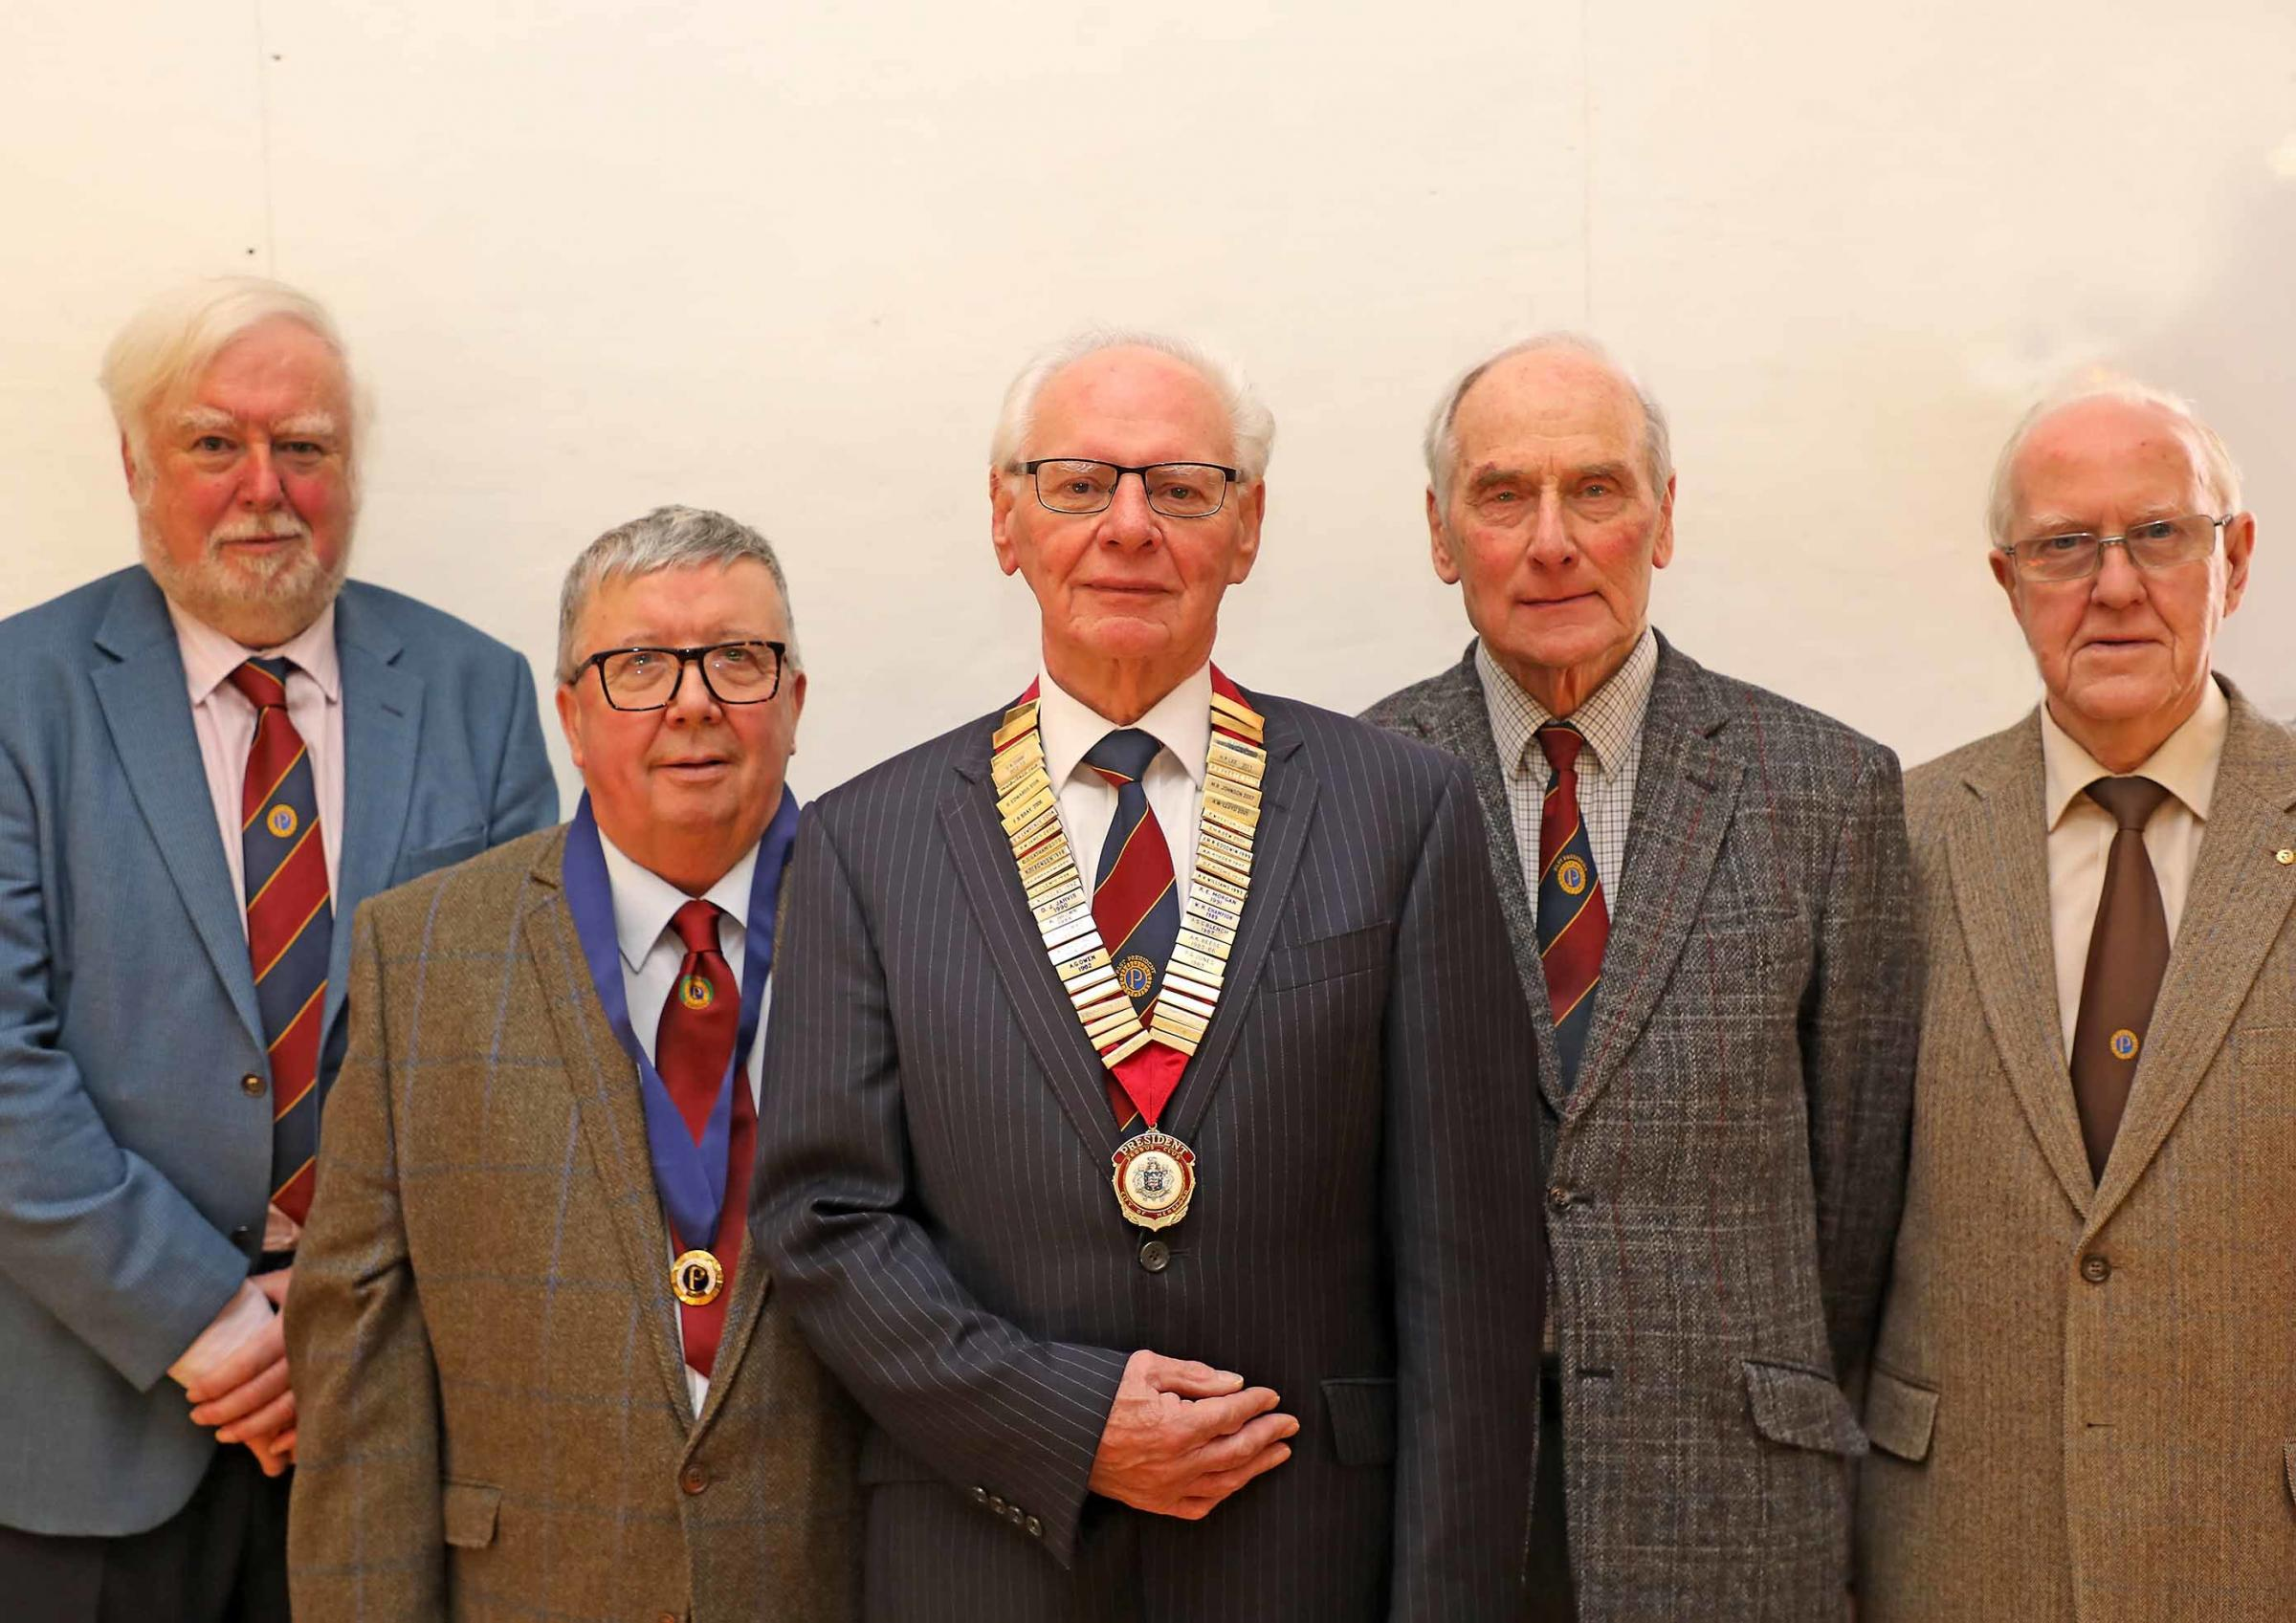 From left: Ted Dowling, Malcolm Jones, Allan Lloyd, Bob Bowden and John Liddle. Photo: Dr Derek Foxton